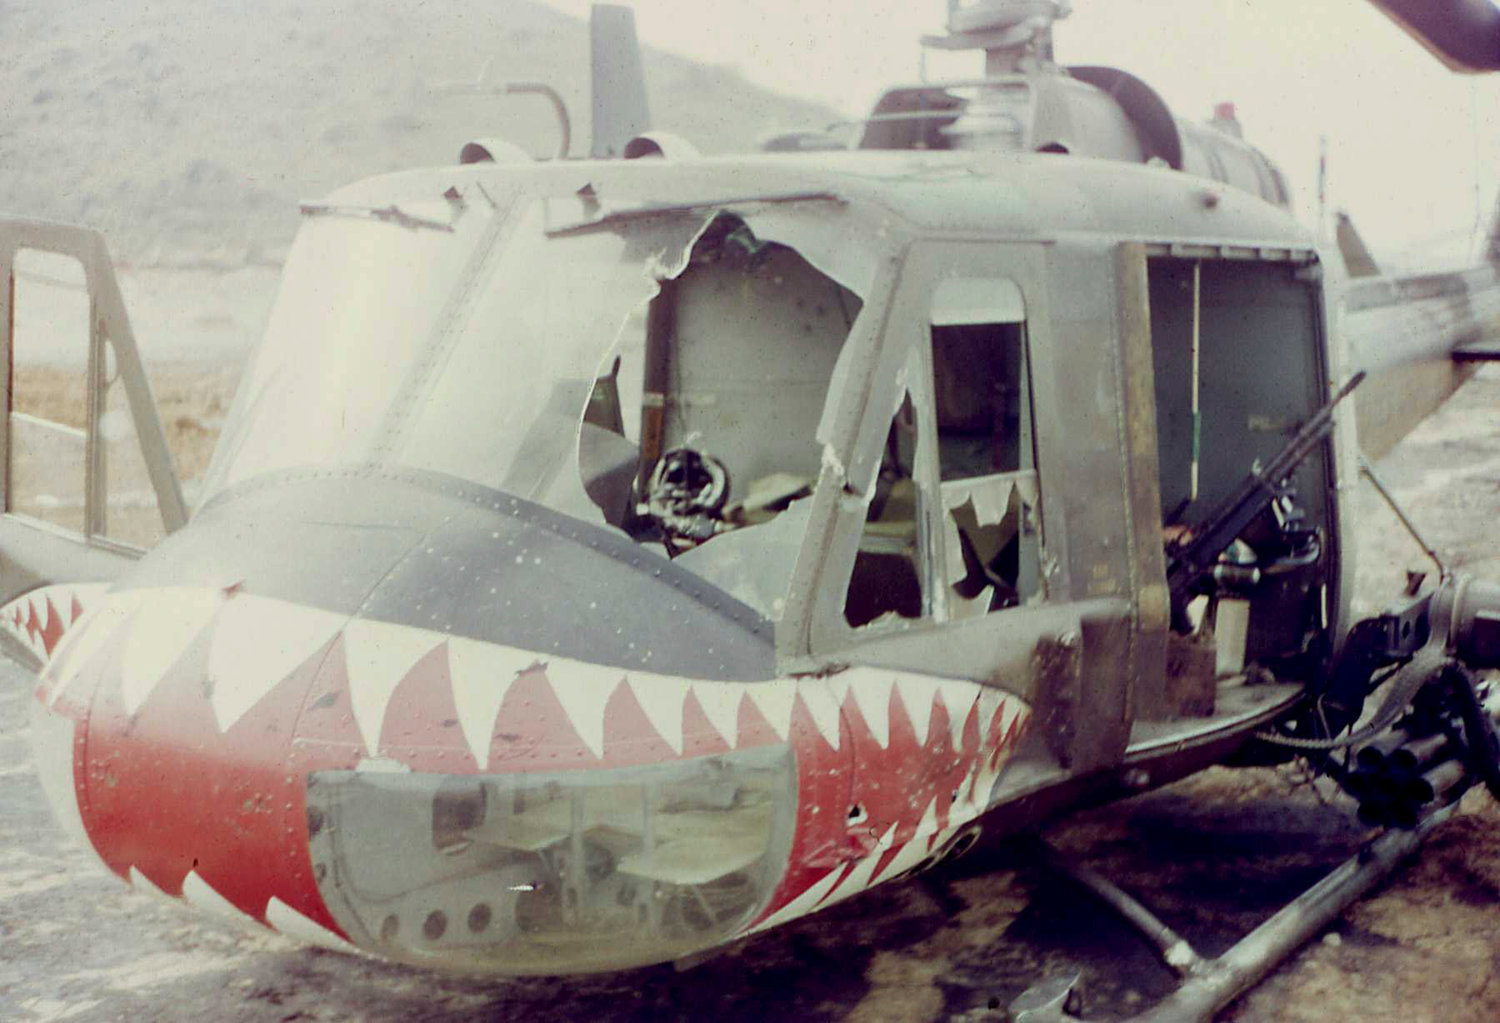 A damaged Bell UH-1C, or Huey, helicopter. Mason flew this attack variant of the famous aircraft in Vietnam, and went down in a monsoon near Saigon.